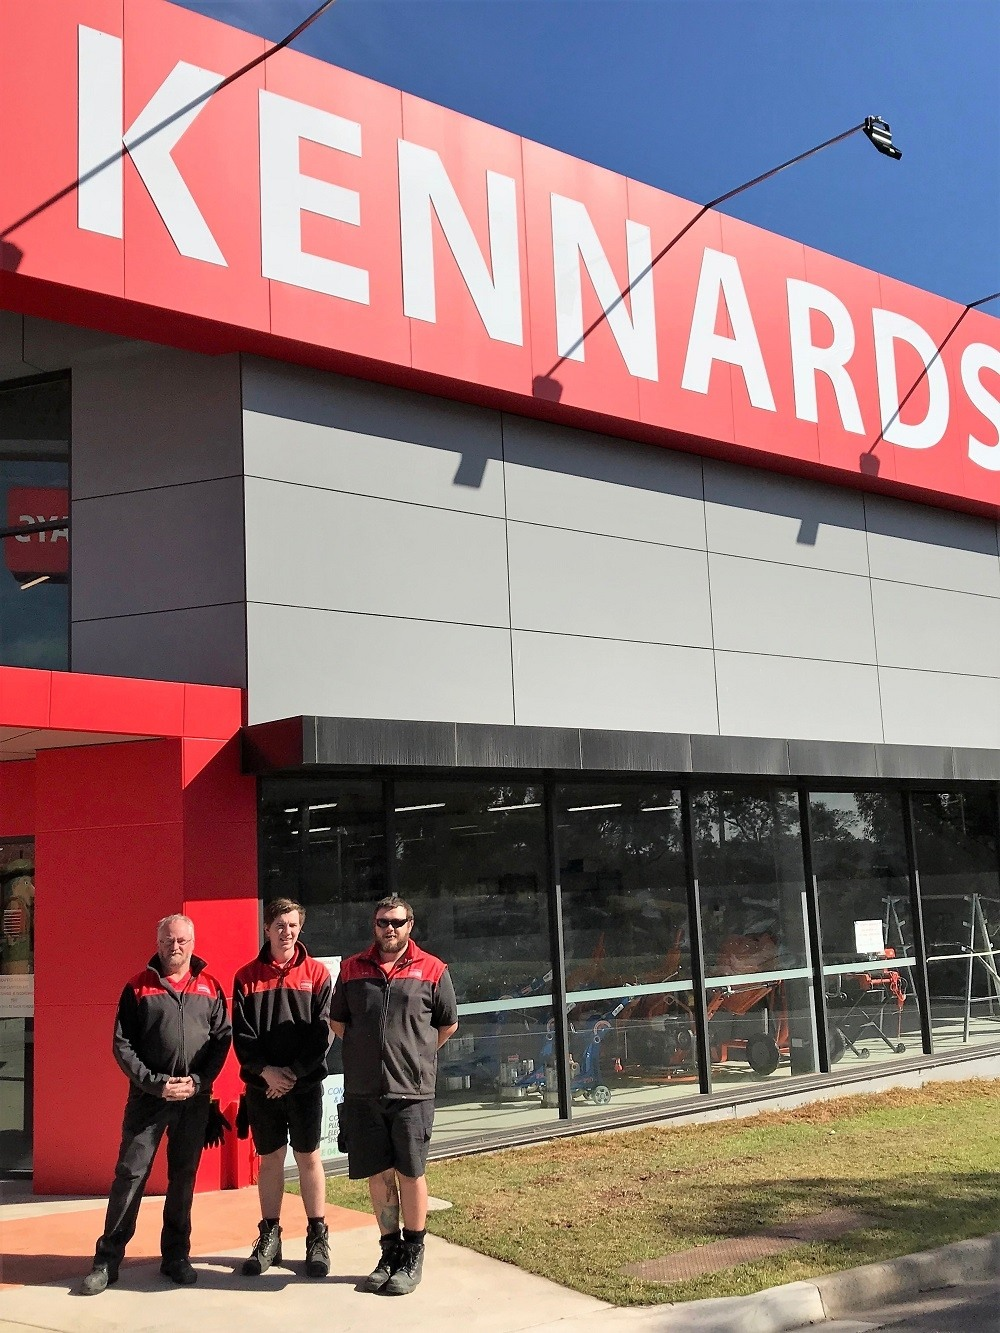 Blog - Kennards Hire expands into North Geelong